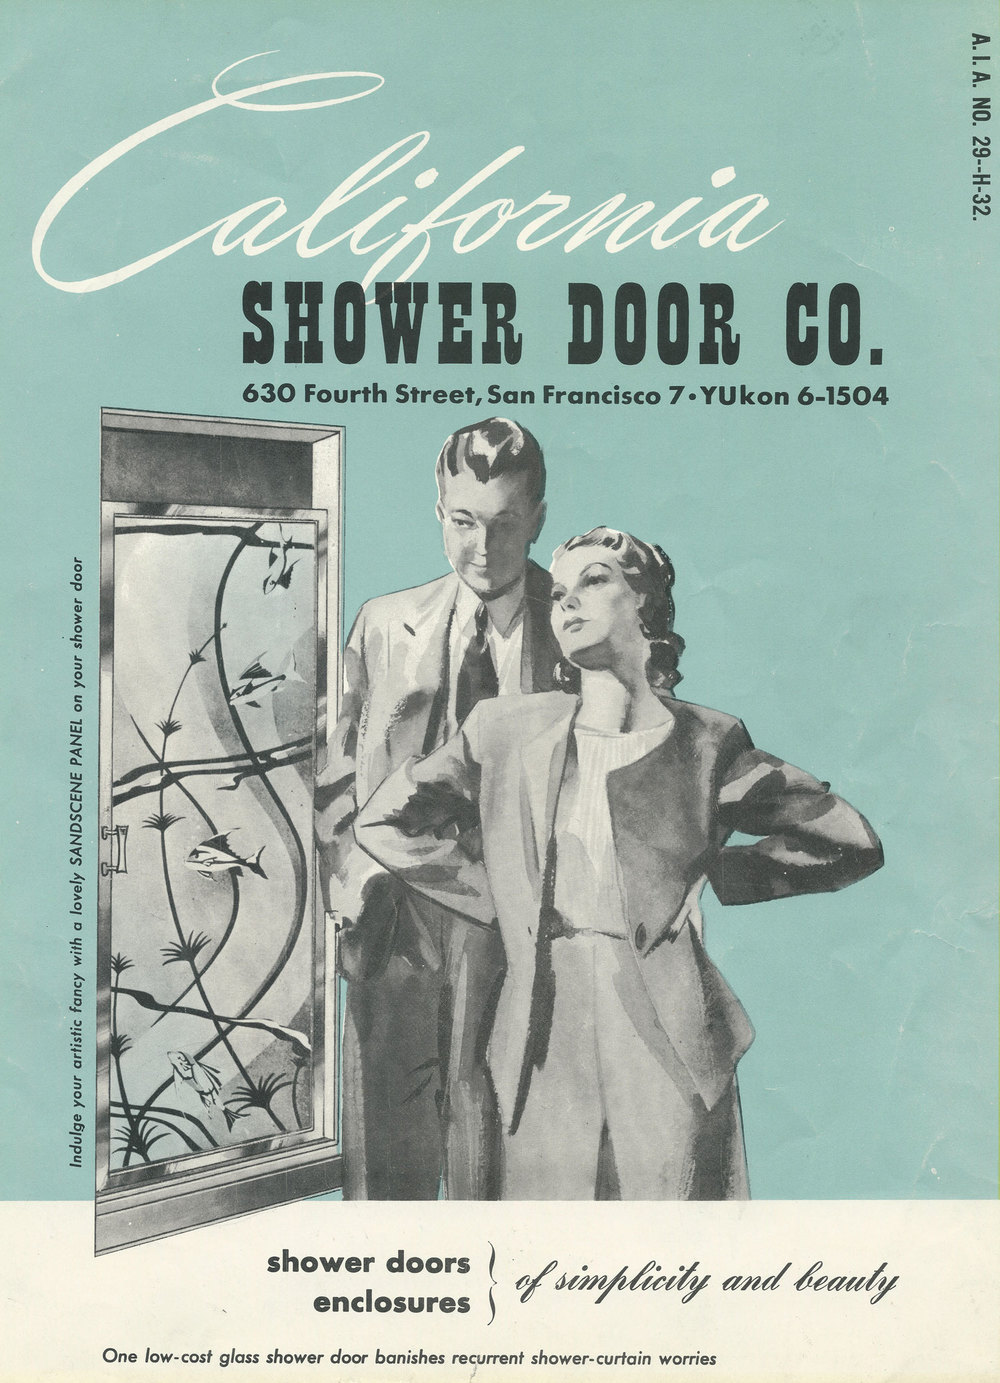 California Shower Door Company advertisement, 1935